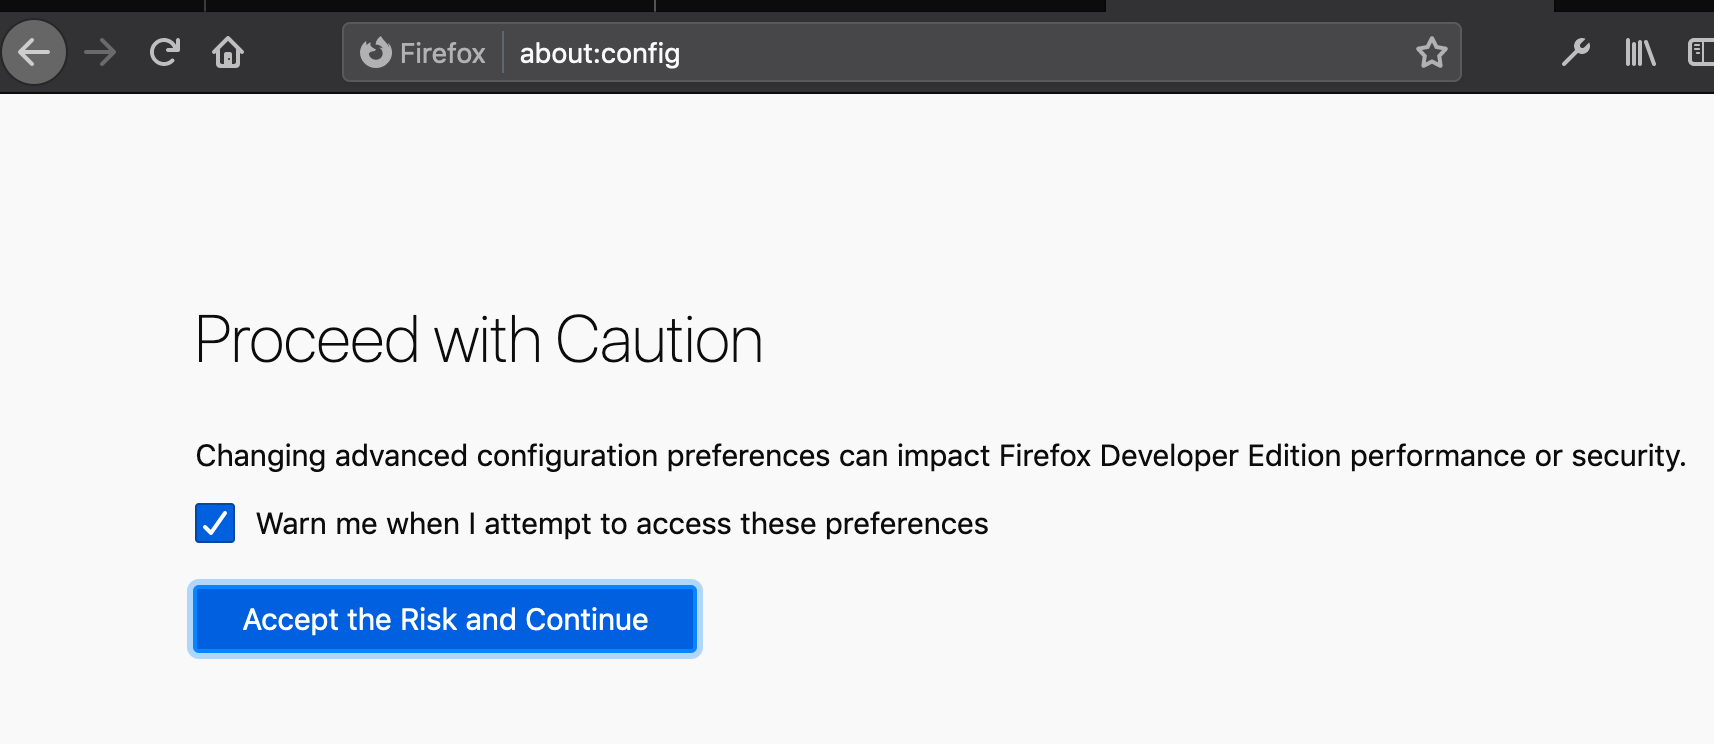 20210131-firefox-developer-about-config.png